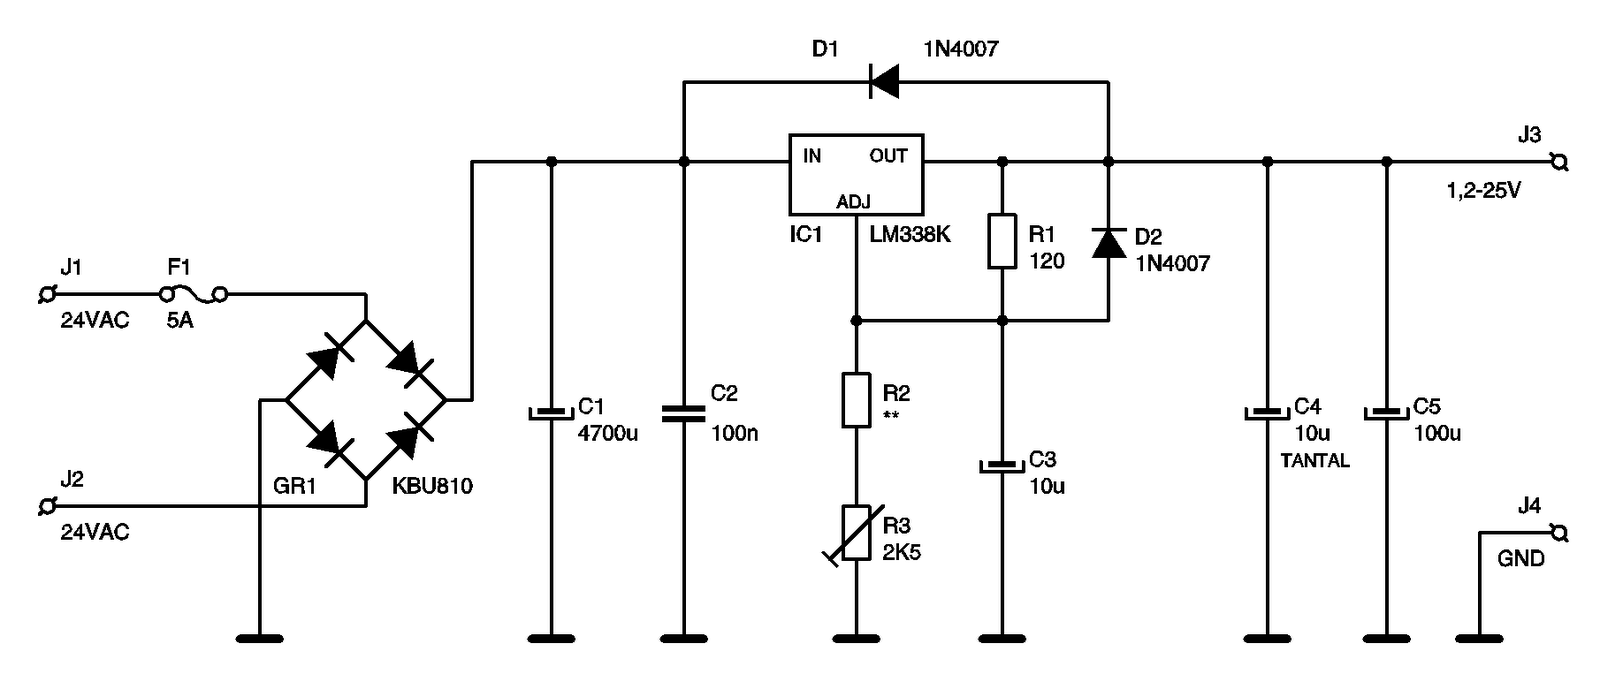 the core of the power supply circuit is lm338k  the scheme circuit 5a power supply with